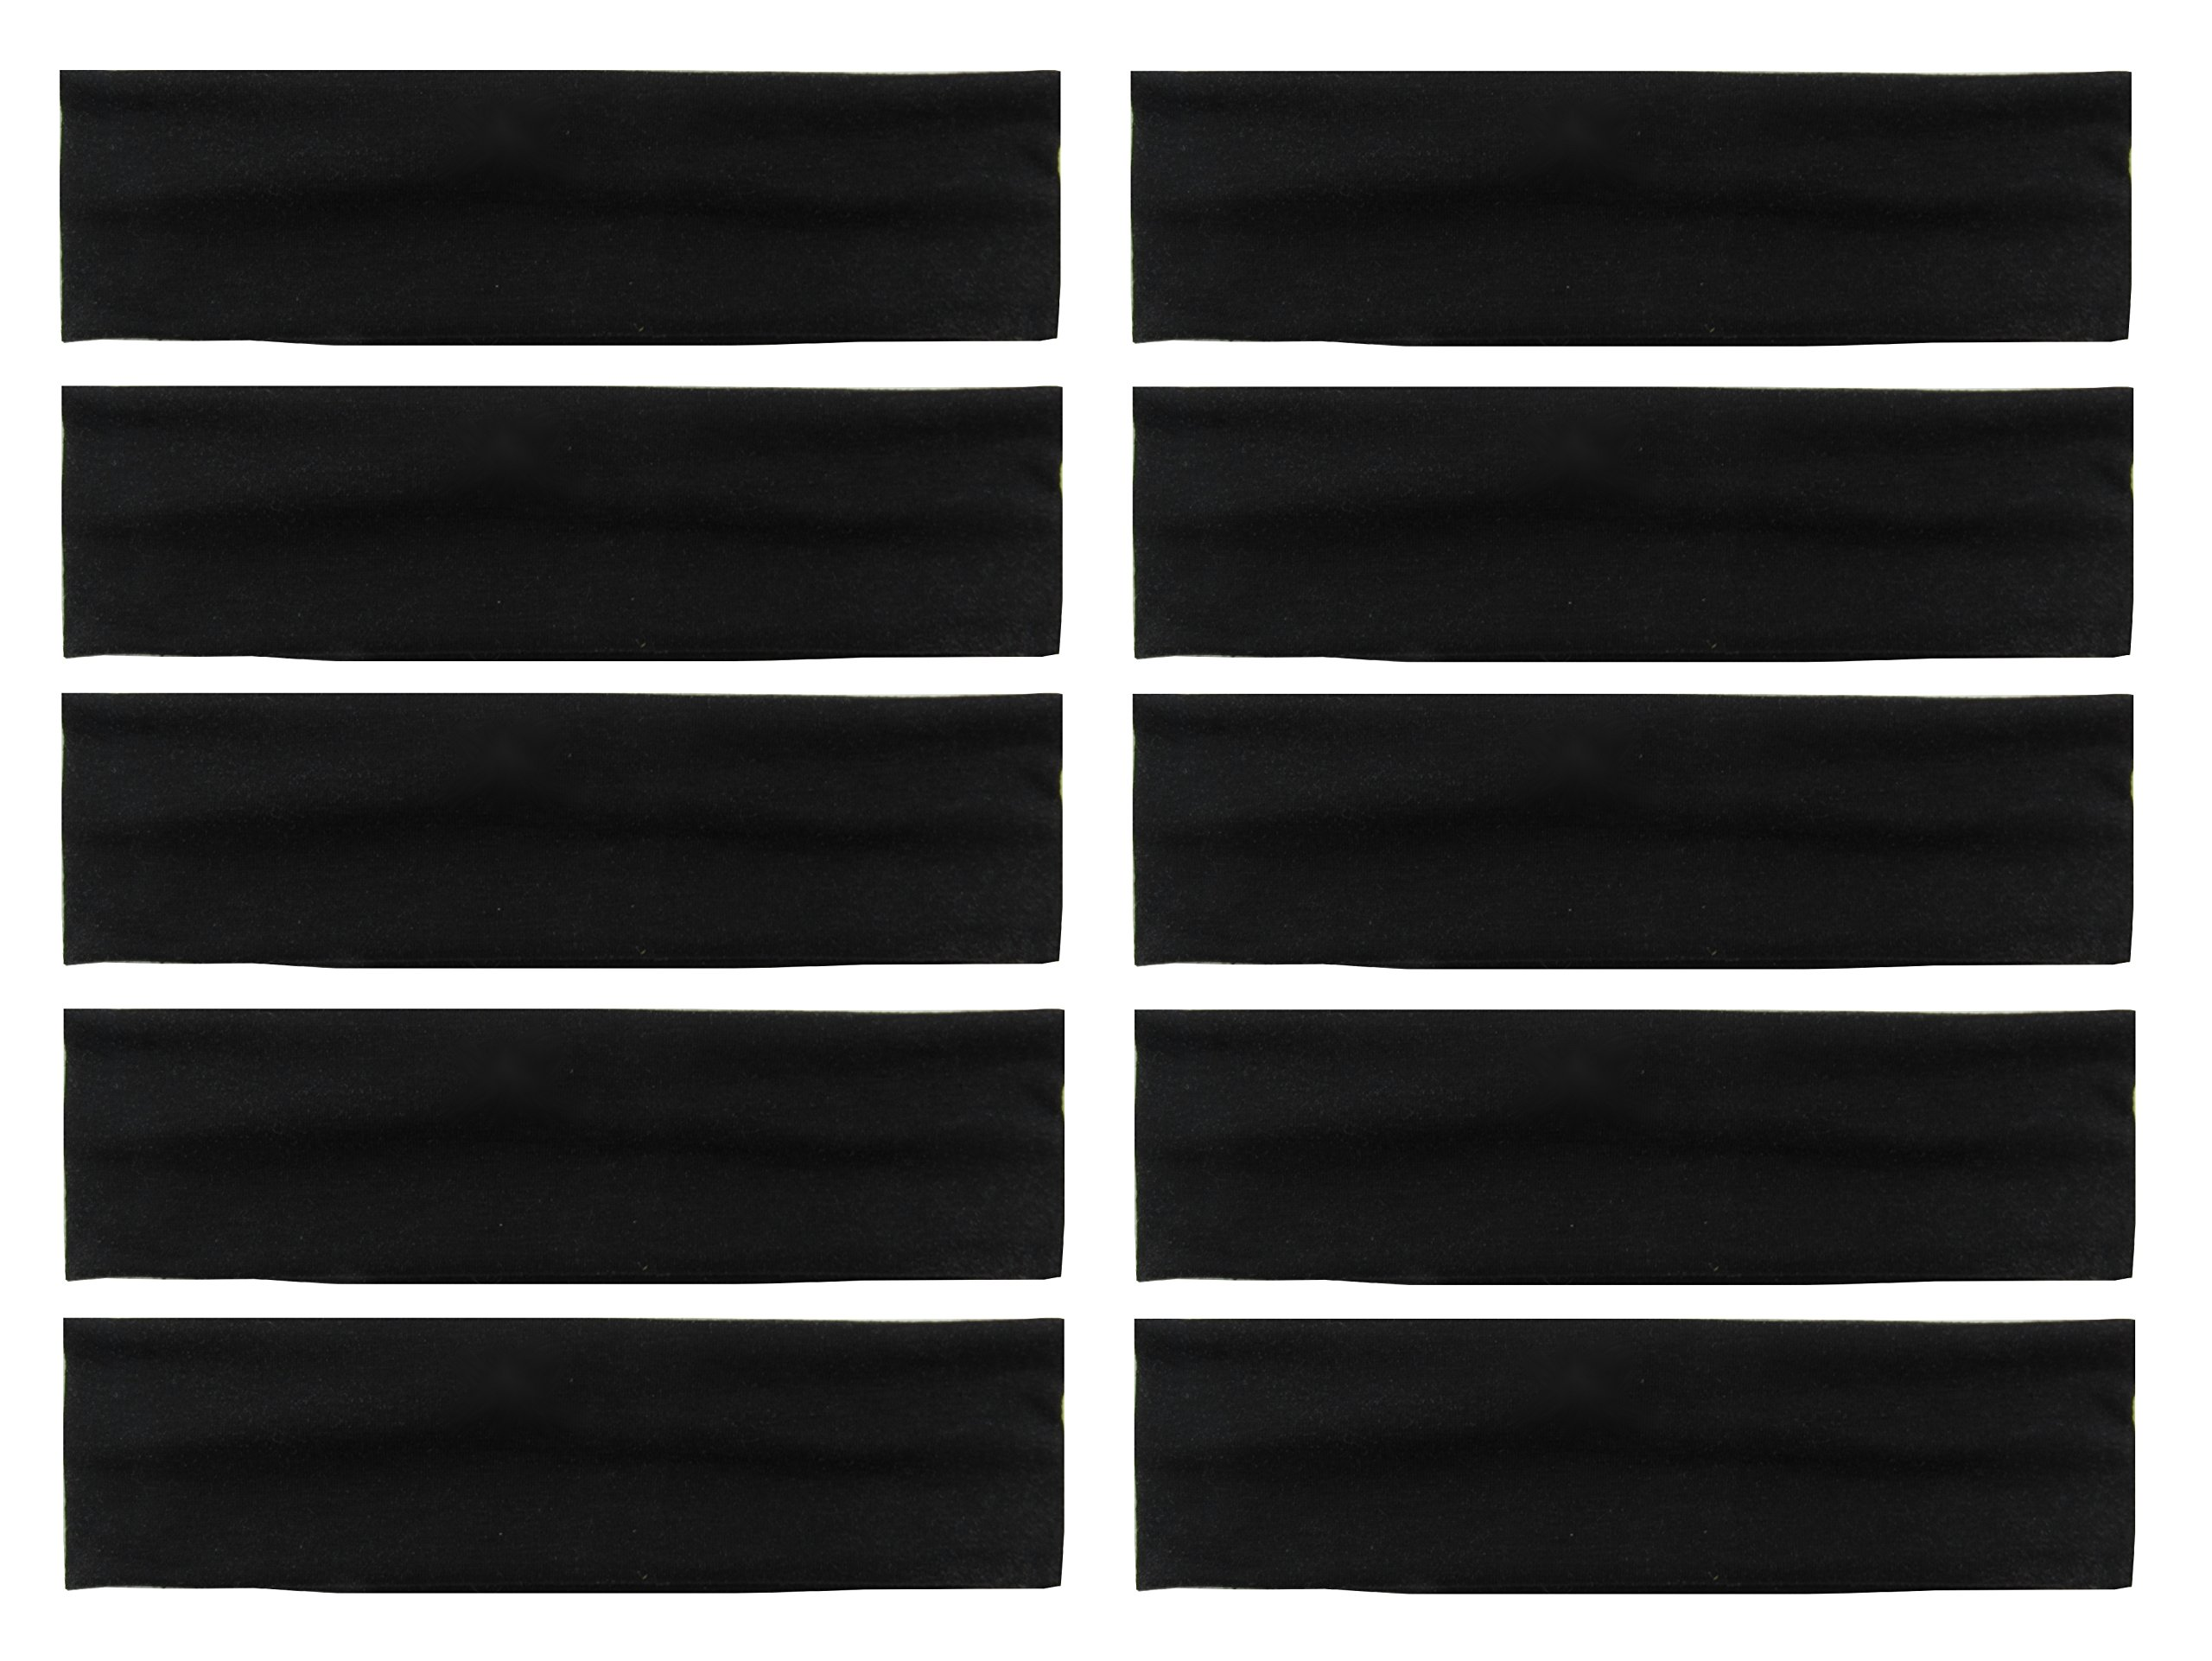 Styla Hair 10 Pack Yoga Headbands - Elastic Cotton Multi-Function Sports Head Bands Stretchy Wraps (Black)